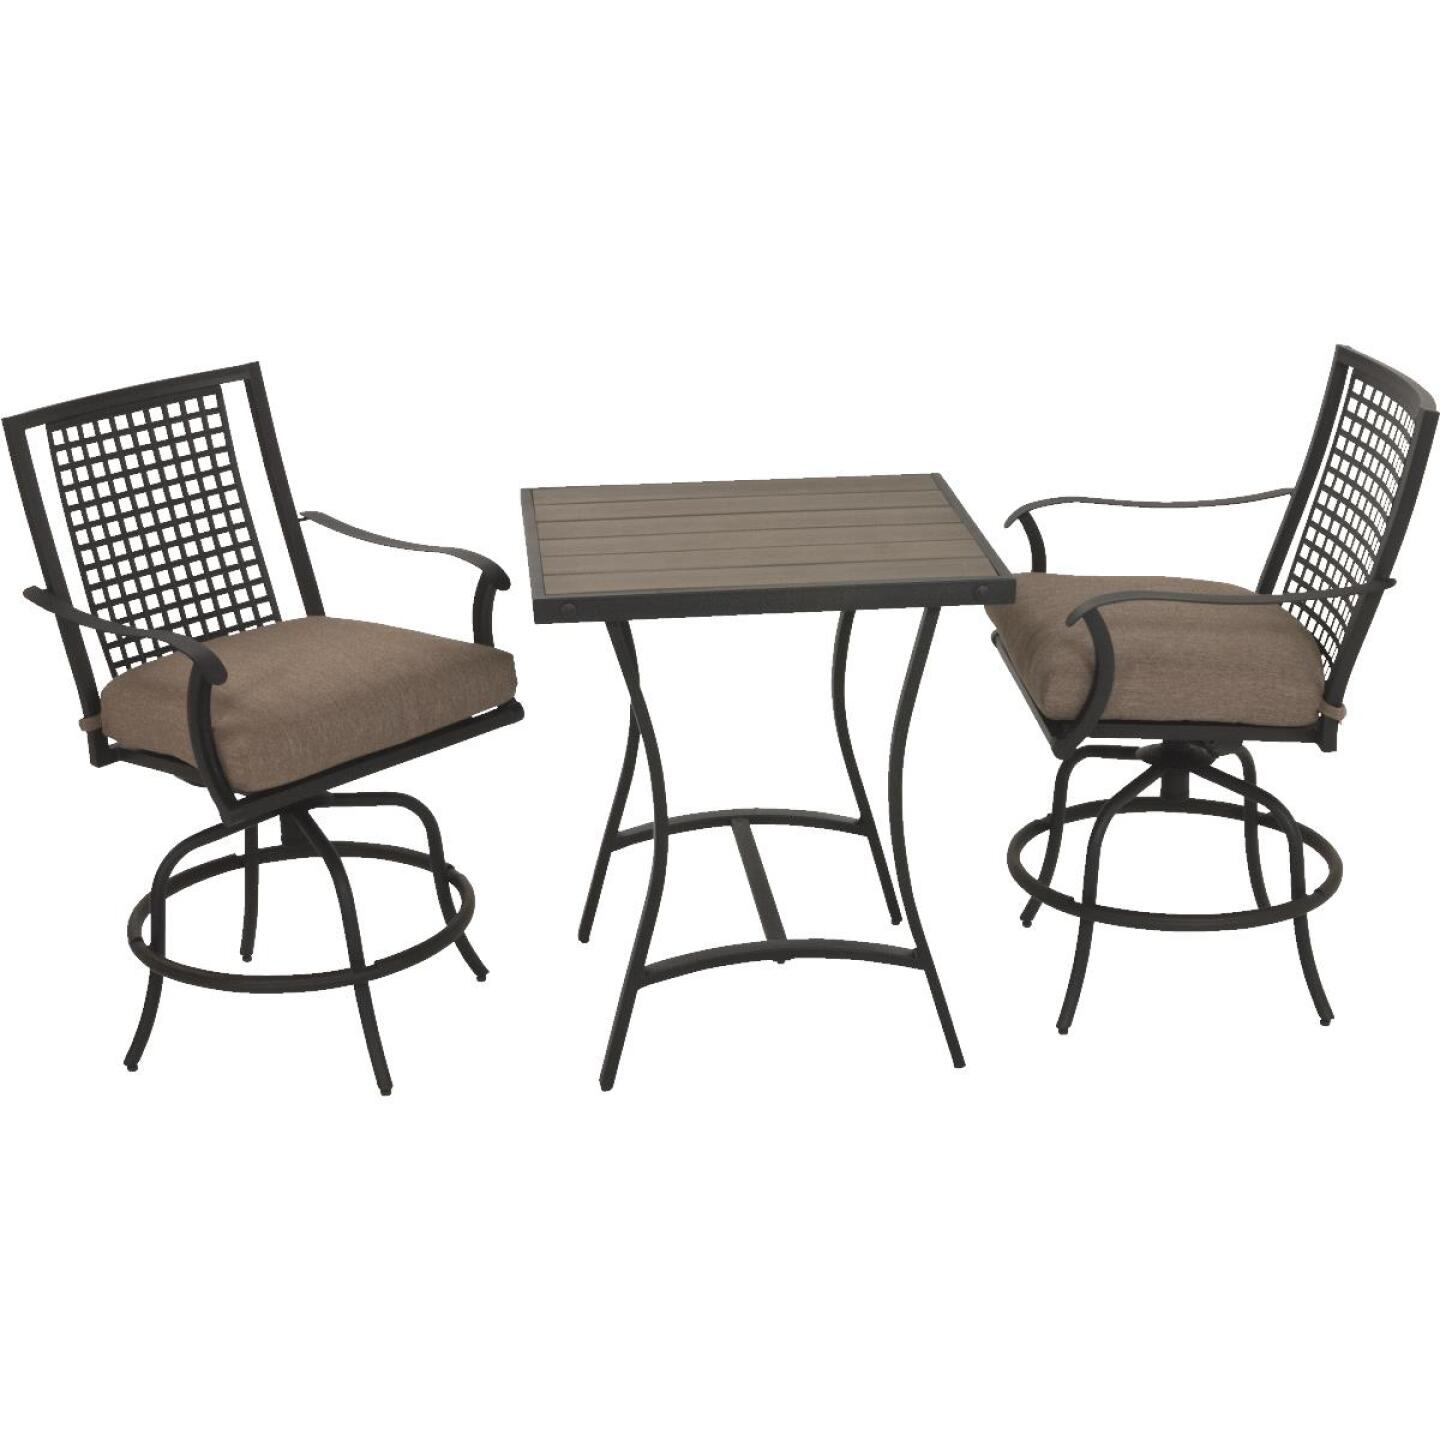 Palazzo 3-Piece Bistro Set with Seat Cushions Image 15